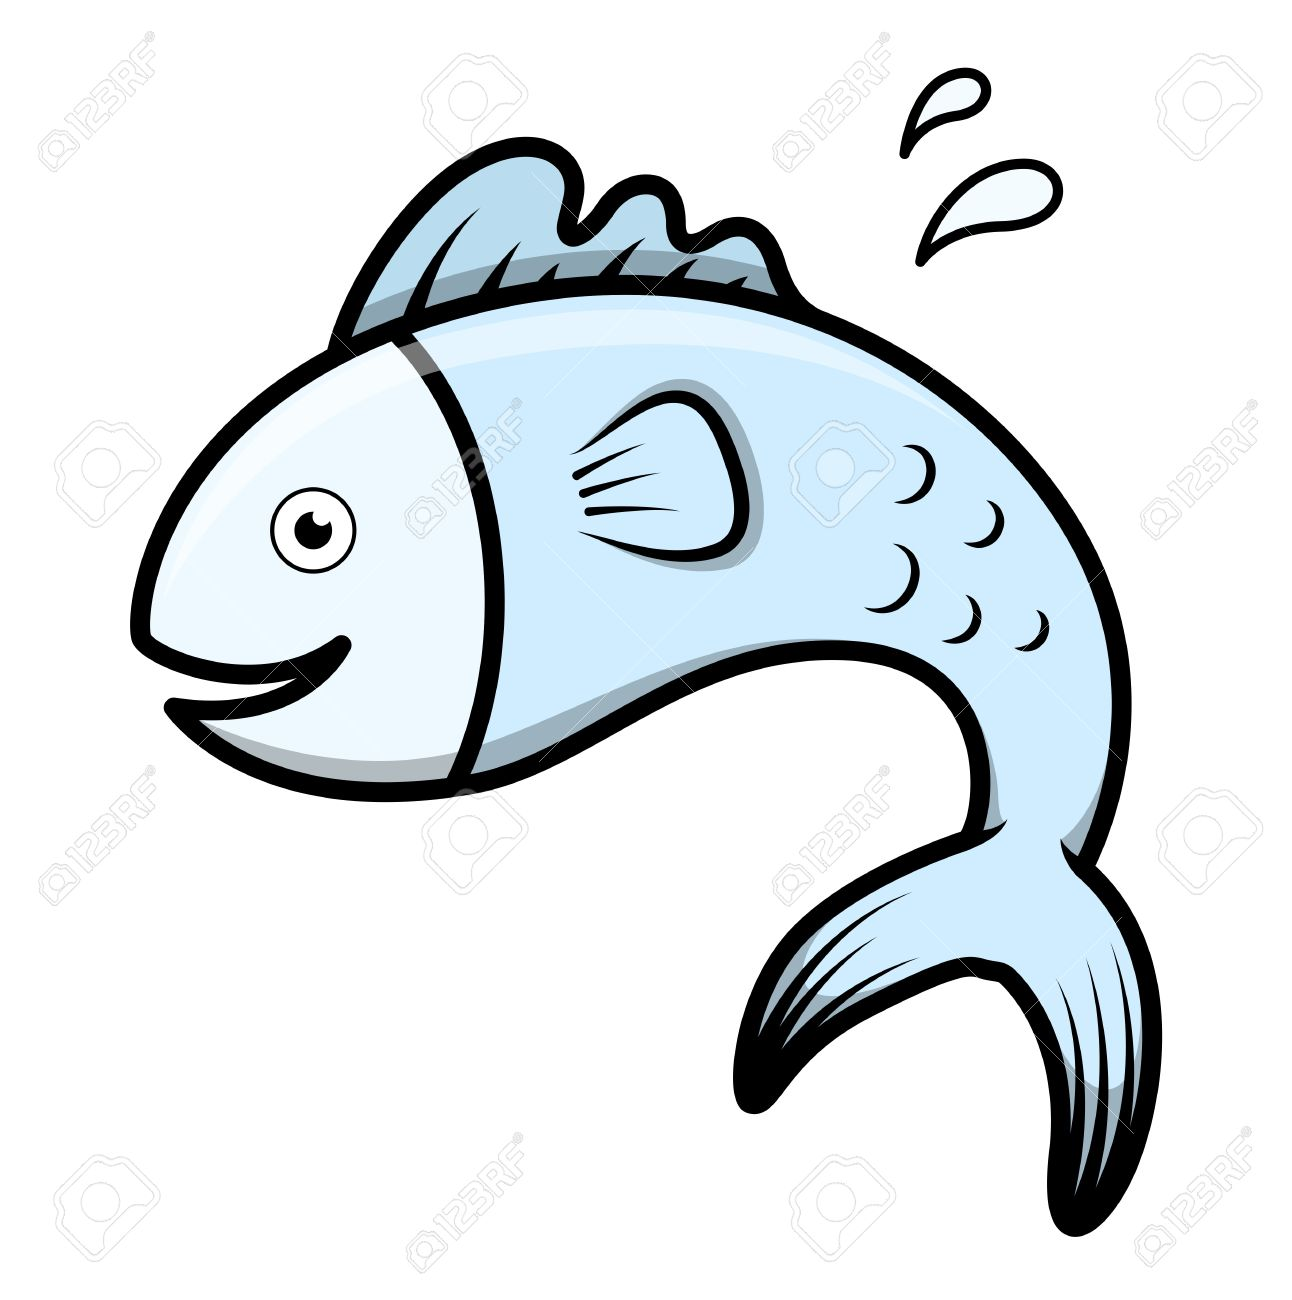 cute cartoon fish vector royalty free cliparts vectors and stock rh 123rf com fish vector graphic fish vector characters